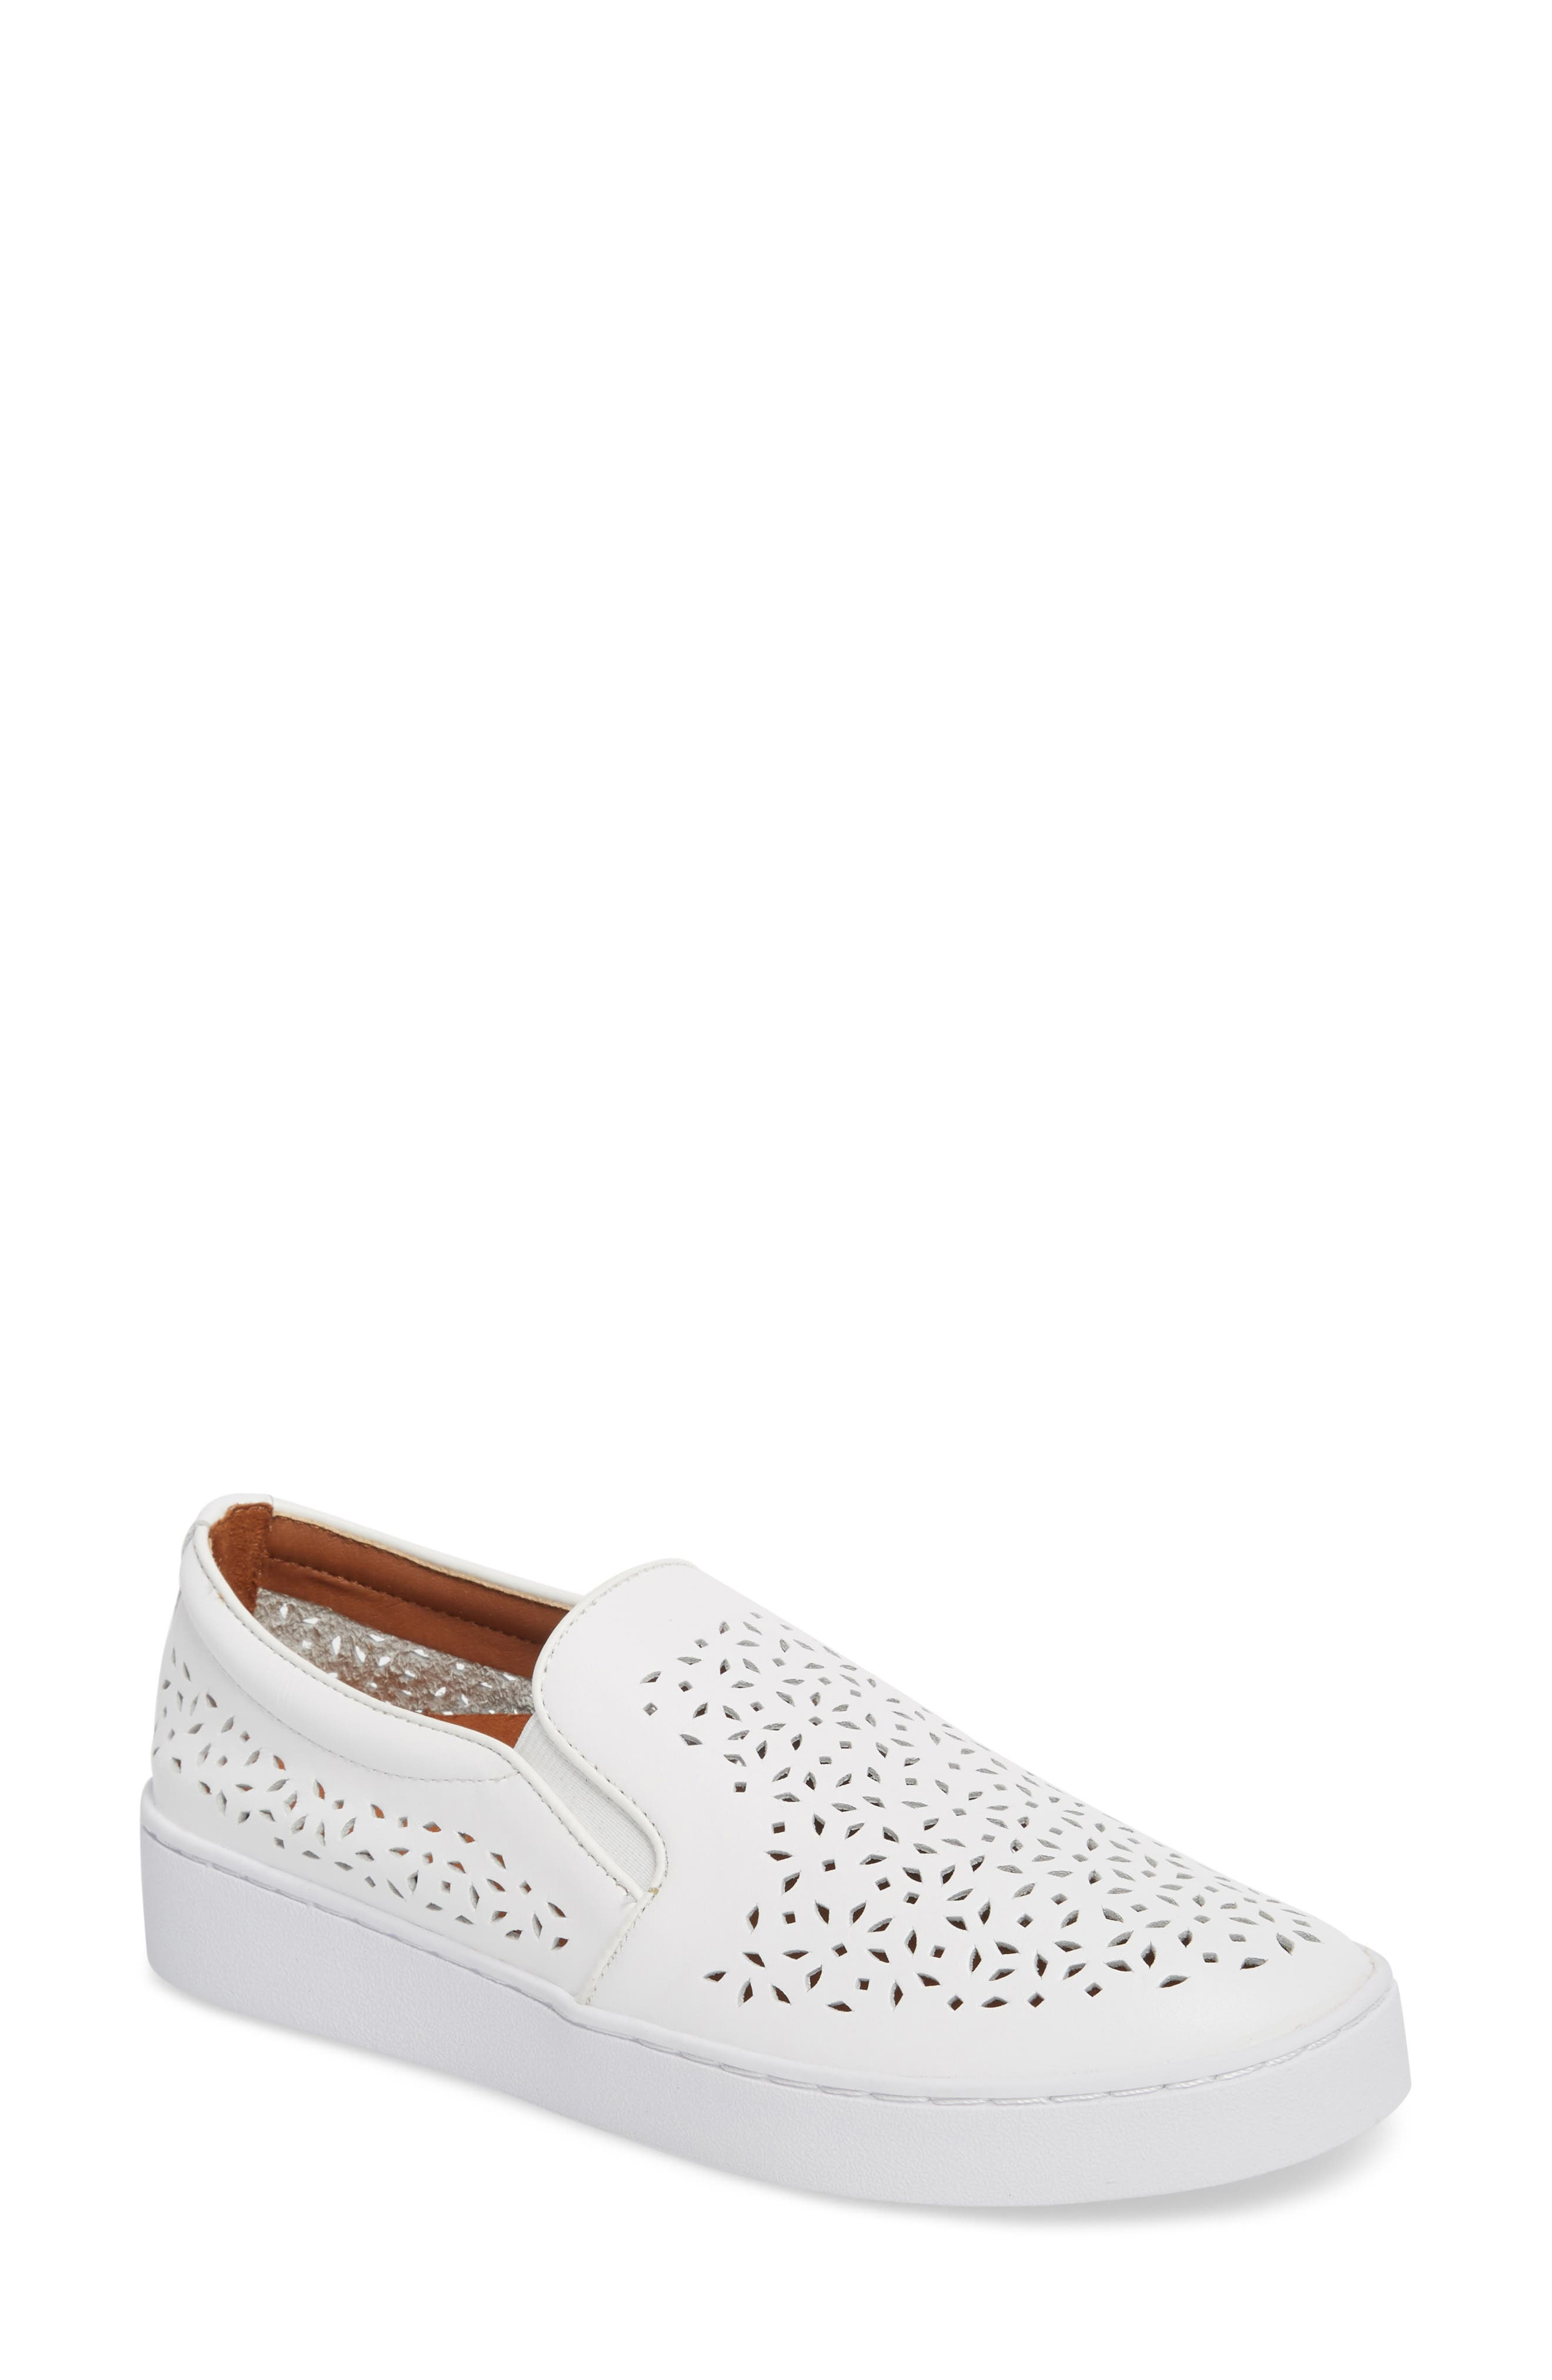 Perforated Slip-On Sneaker,                         Main,                         color, 101